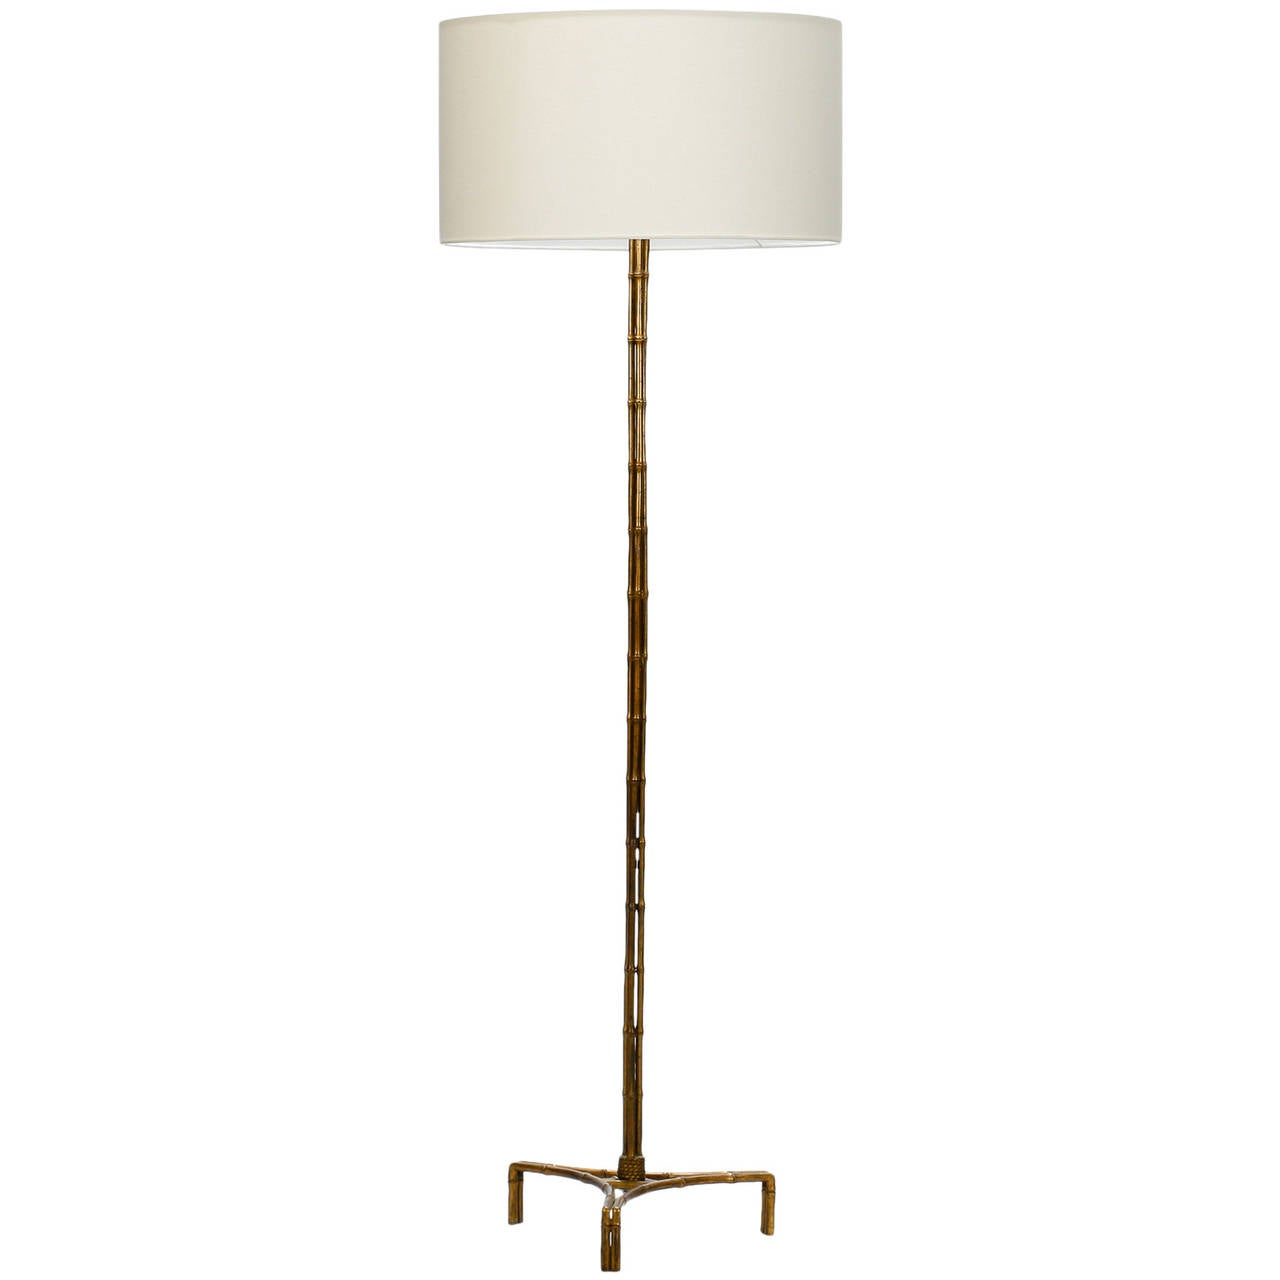 french mid century faux bamboo brass floor lamp at 1stdibs. Black Bedroom Furniture Sets. Home Design Ideas